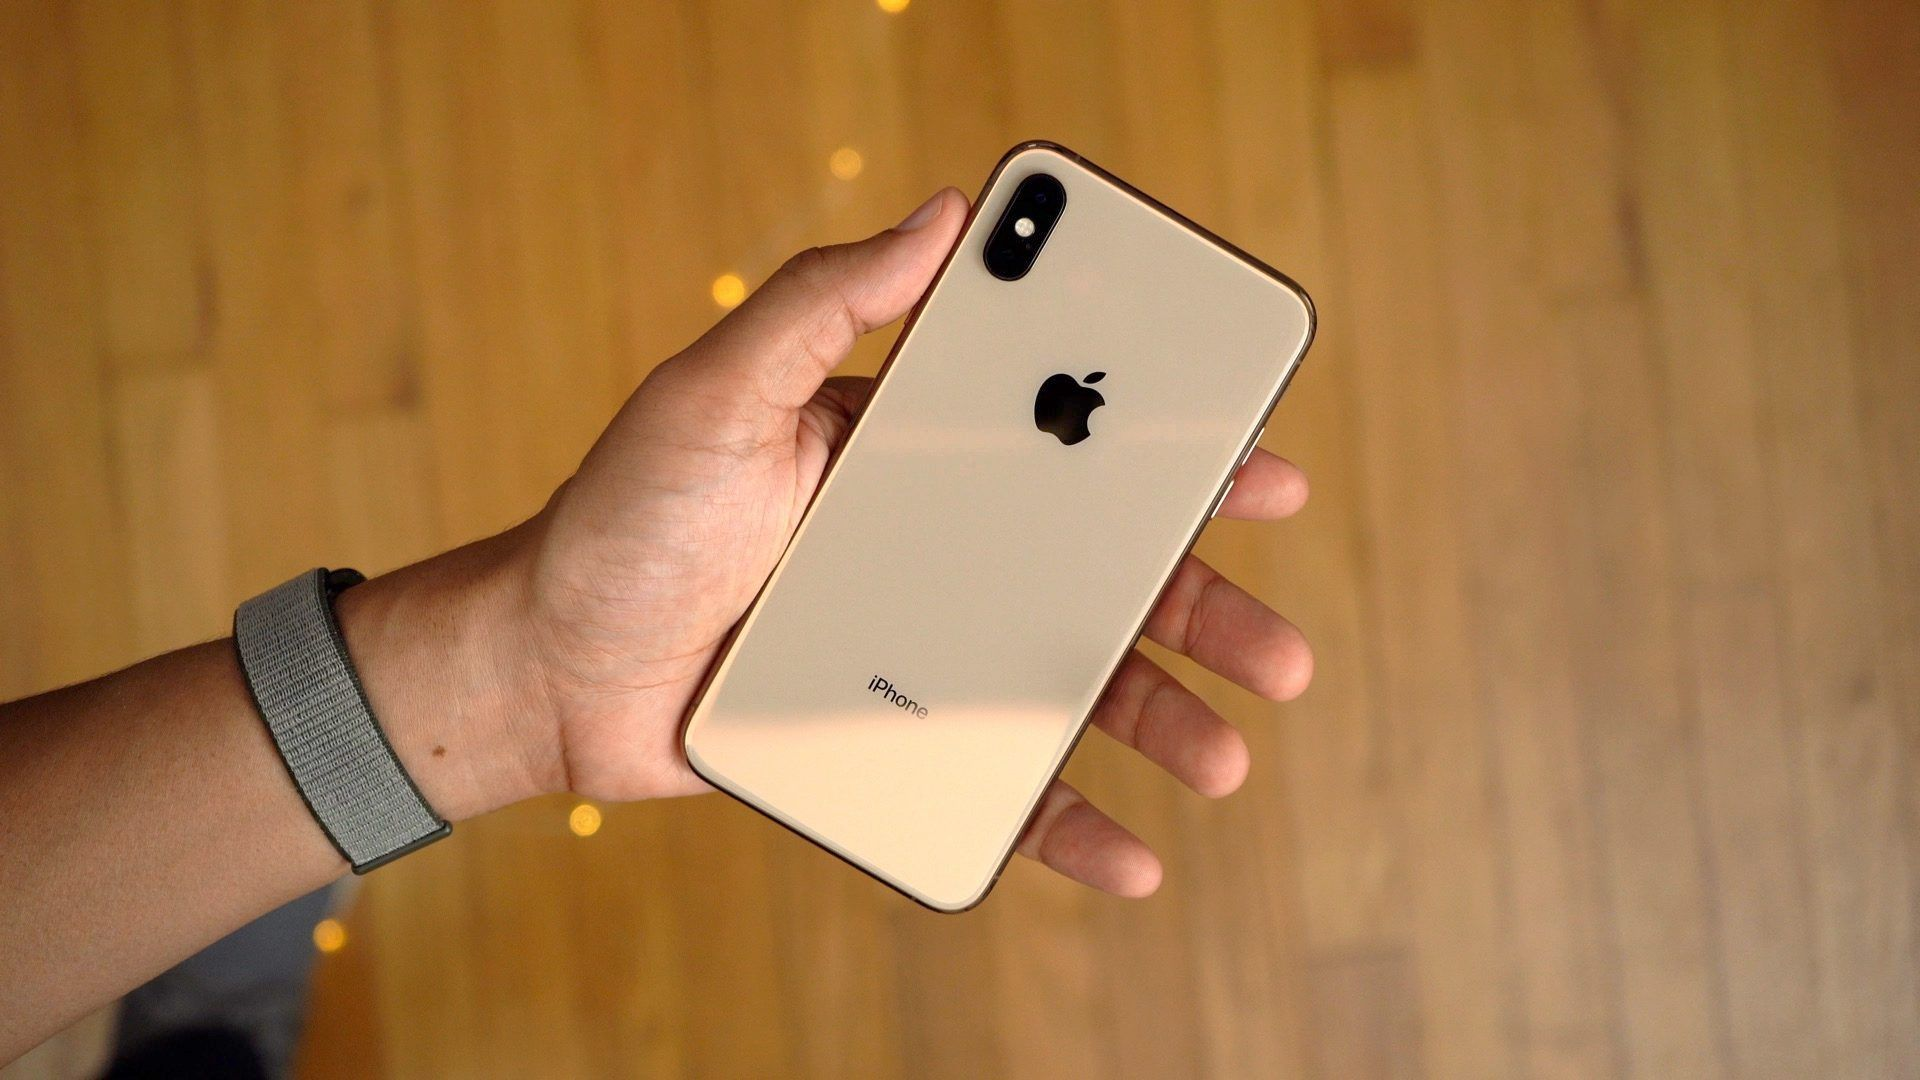 9to5rewards win a gold iphone xs max from zendure iphone